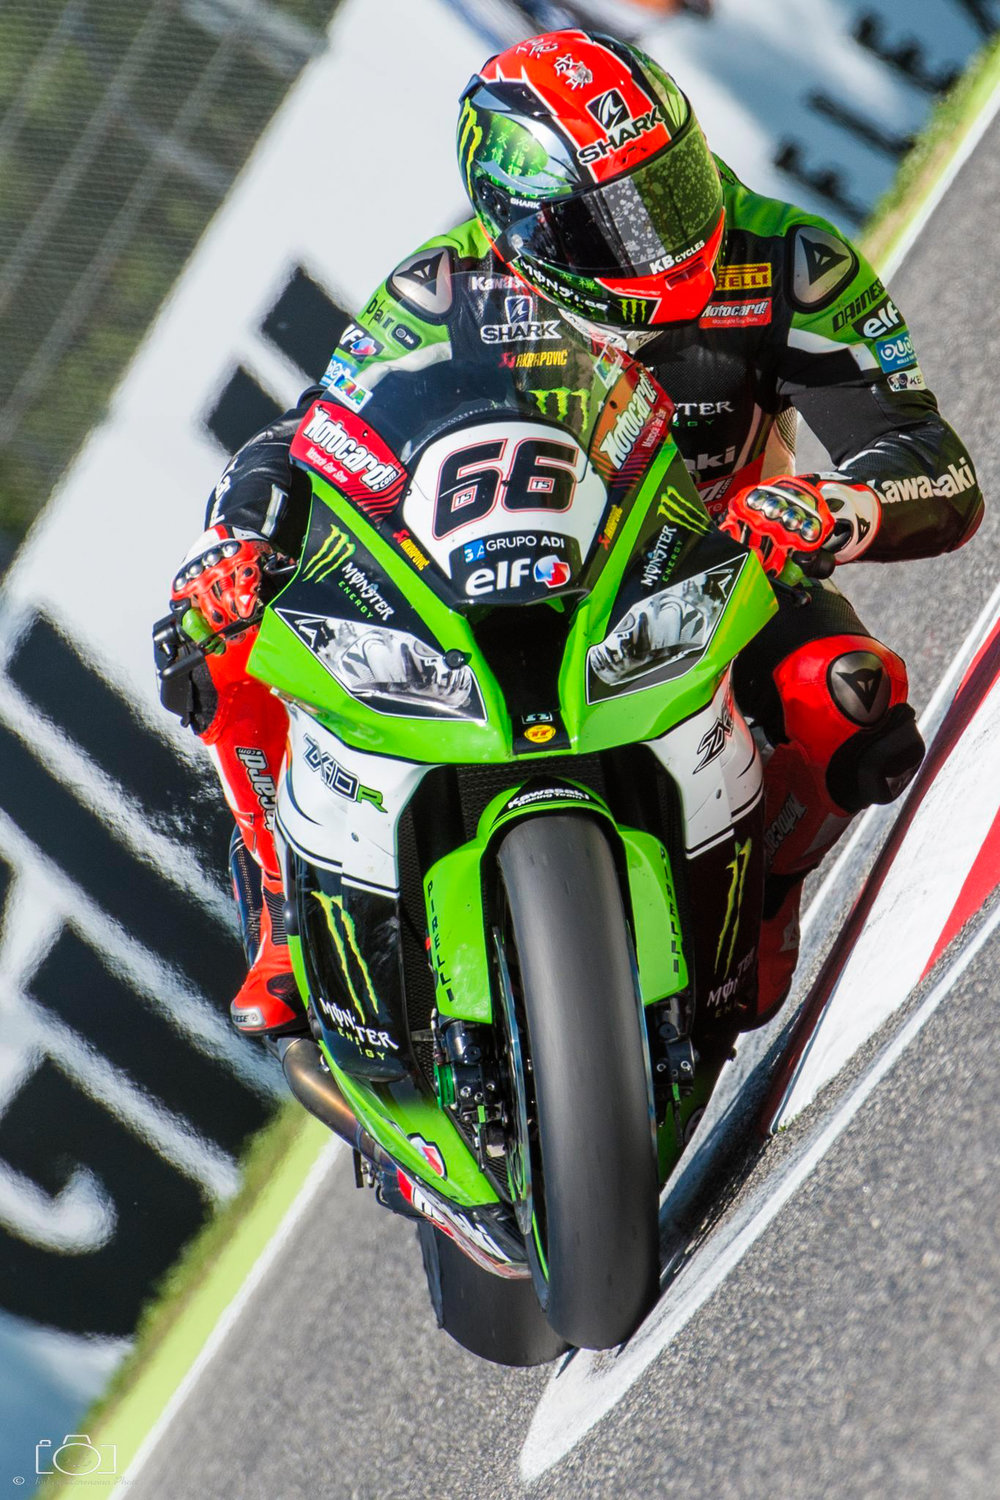 41-superbike-sbk-moto-bike-imola-race.jpg